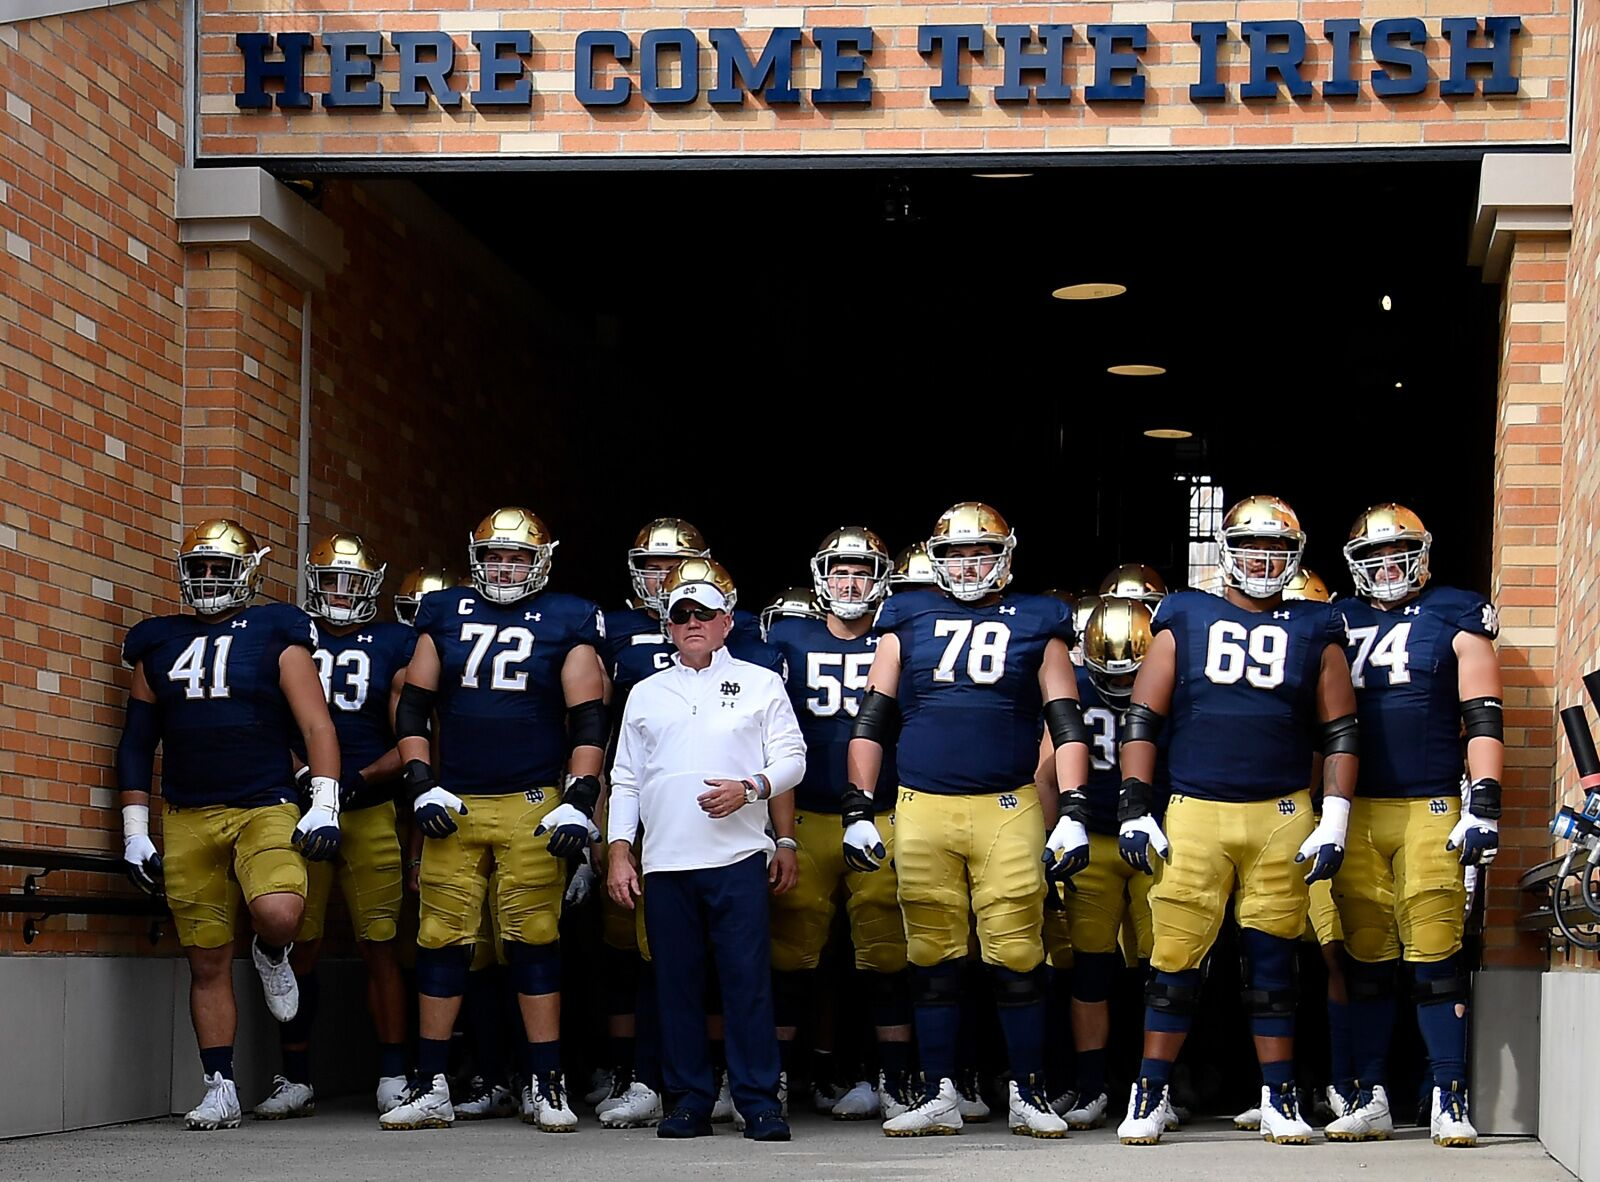 Notre Dame Football: Final report card for 2019 season